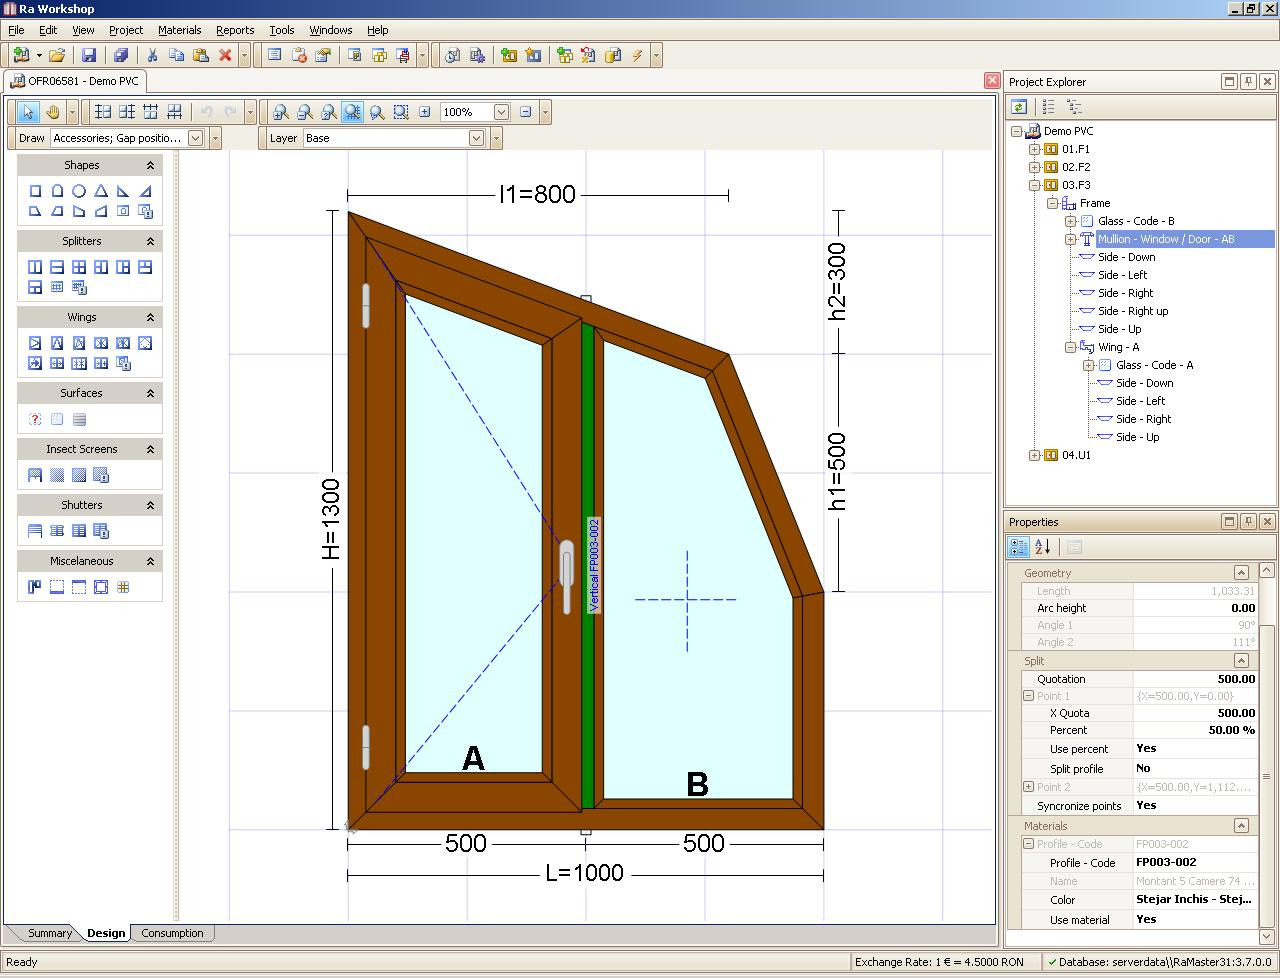 pvc, aluminiu, wood, windows, doors, software, cutting optimization